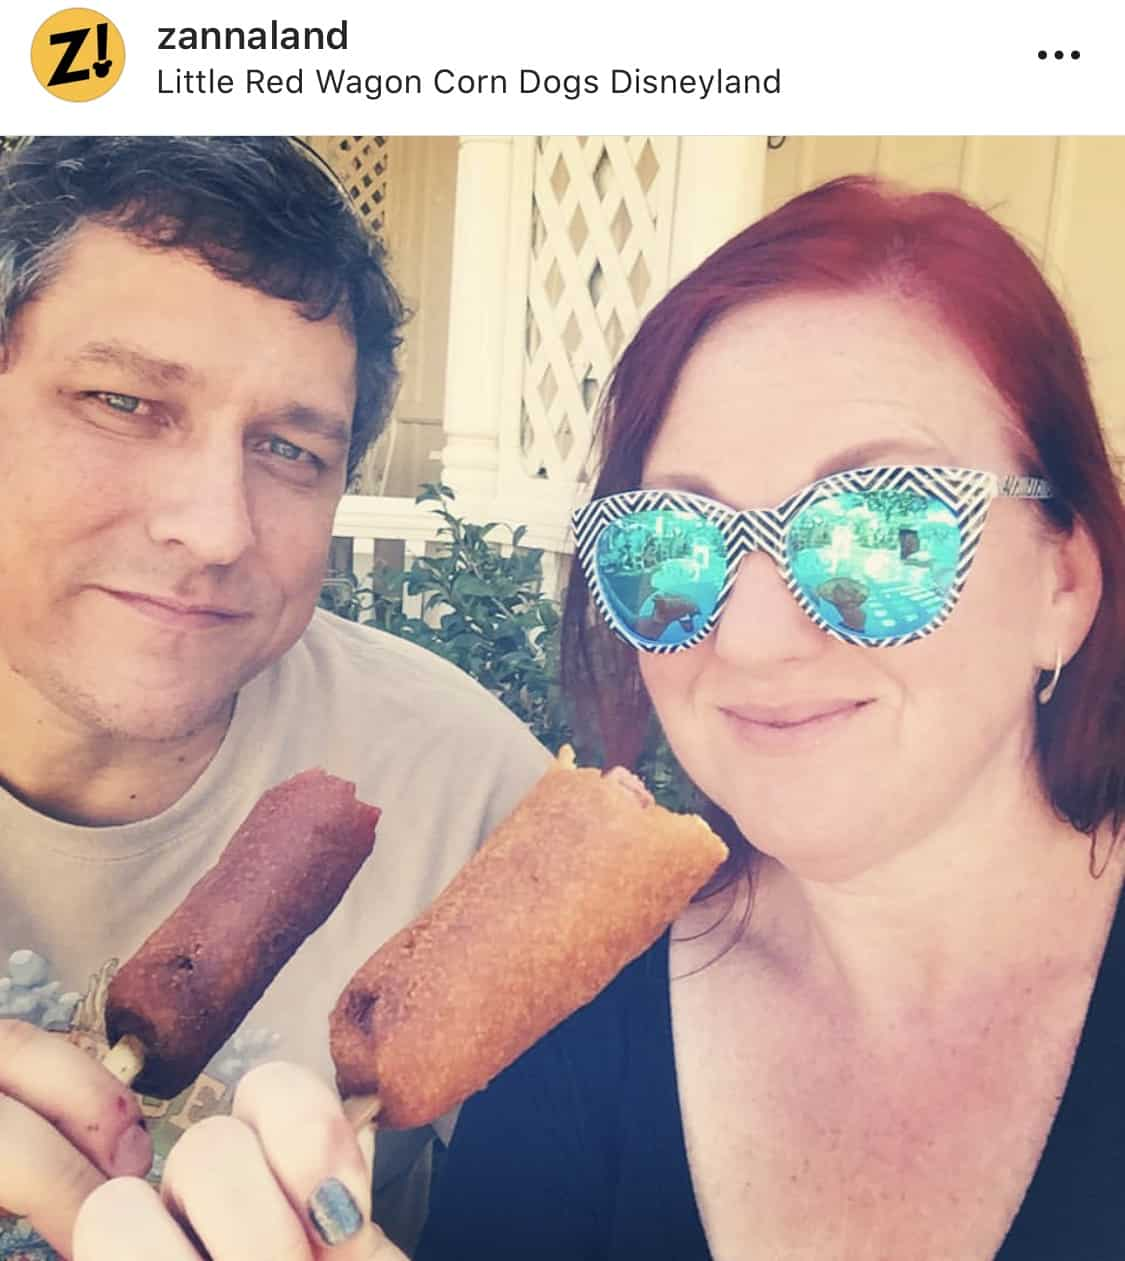 Disneyland Corn Dog